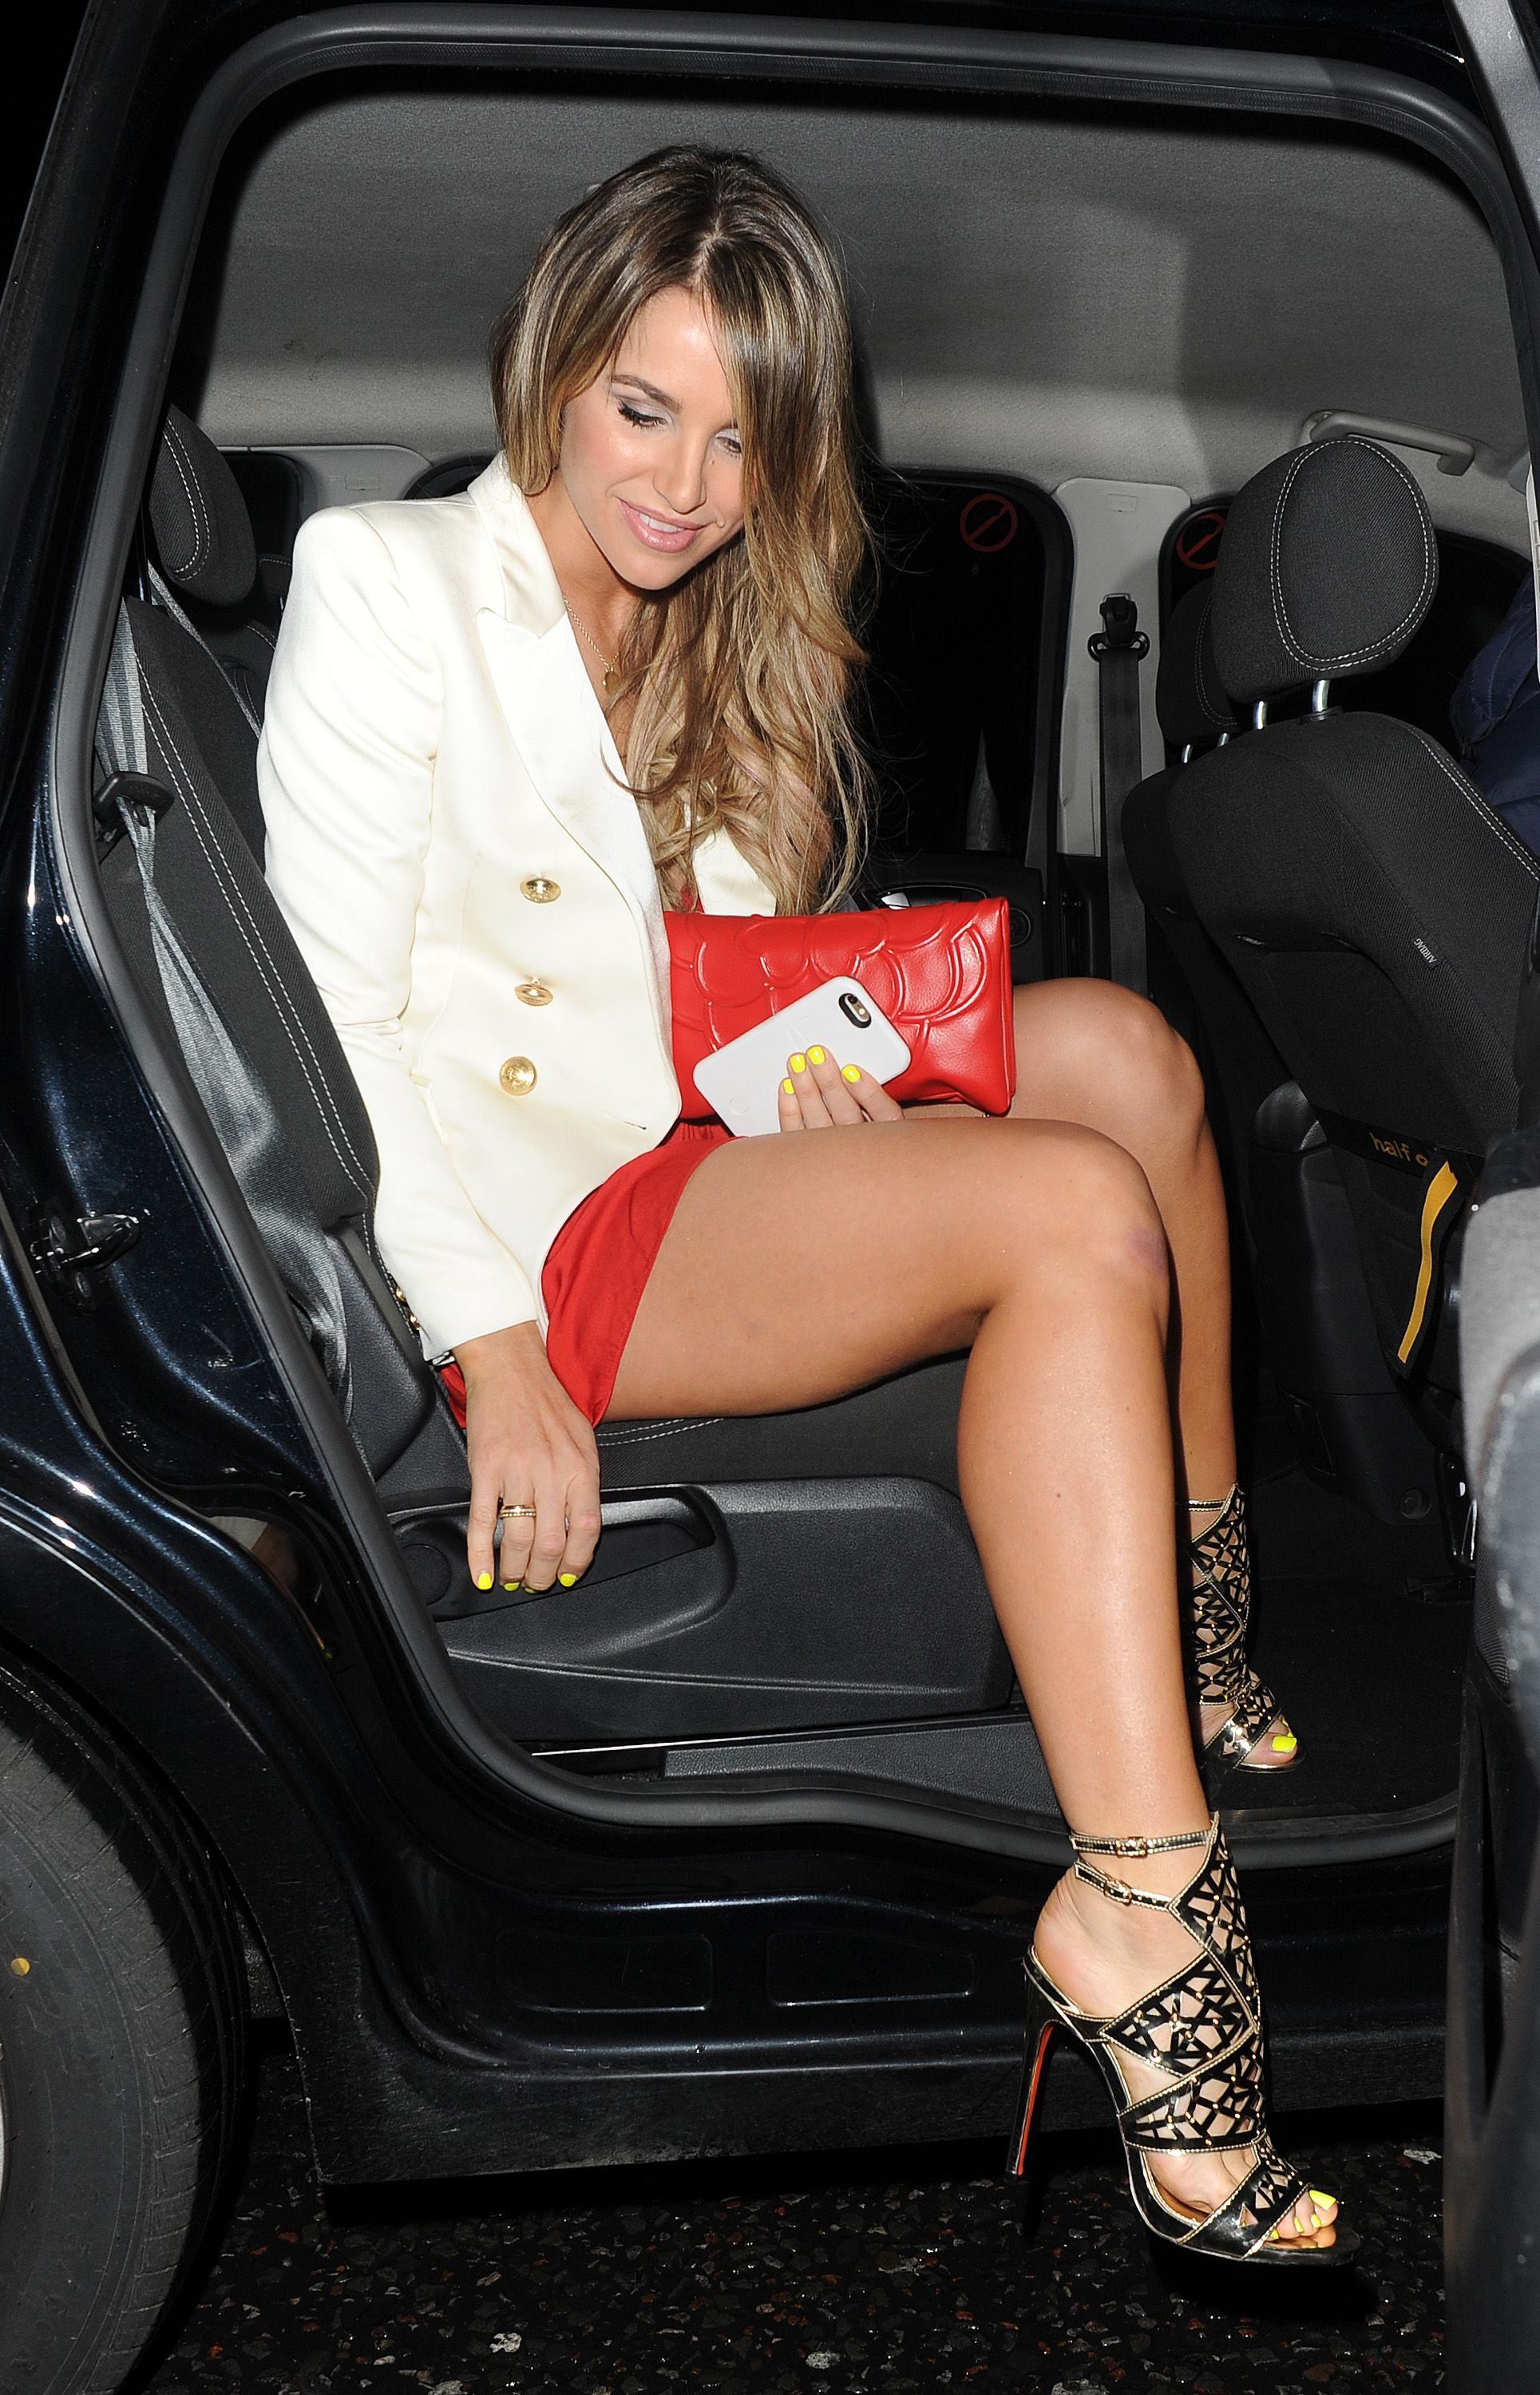 The best celebrity upskirts of all time